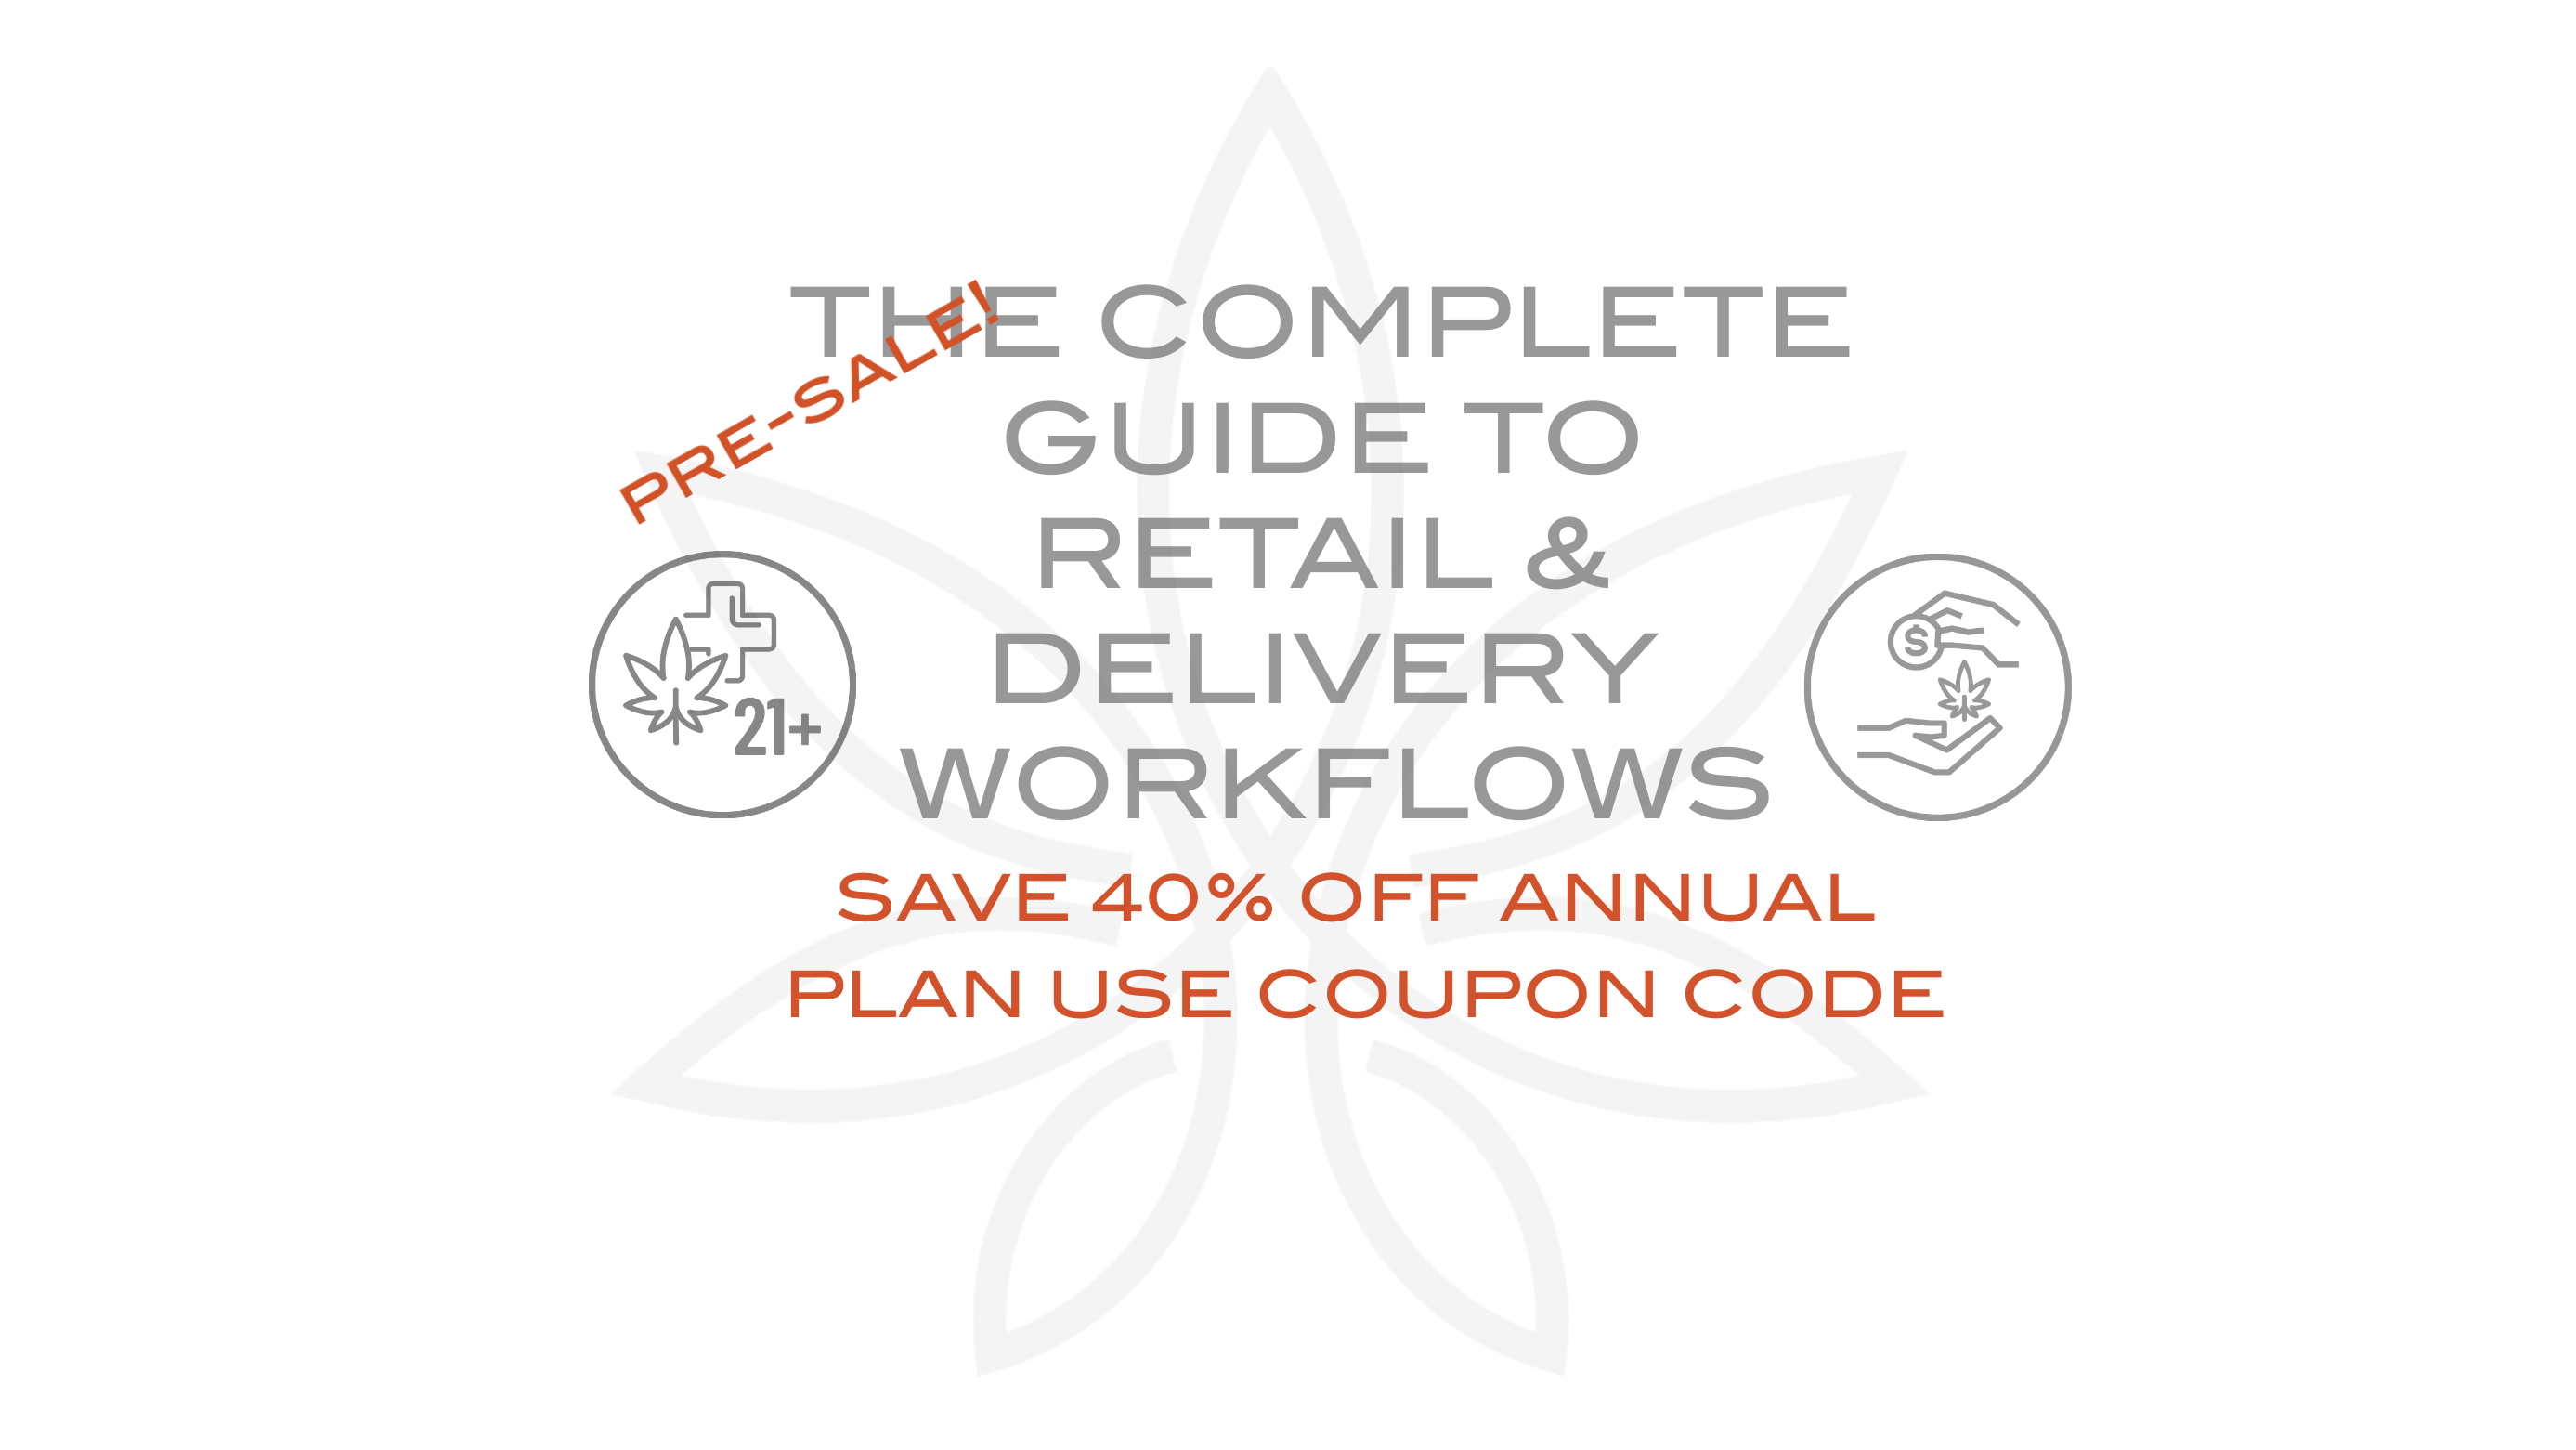 THE COMPLETE GUIDE TO retail and delivery workflows RMCC METRC tickets, METRC training, Oklahoma cannabis, Maine Cannabis, Oregon Cannabis, coronavirus, cannabis certification